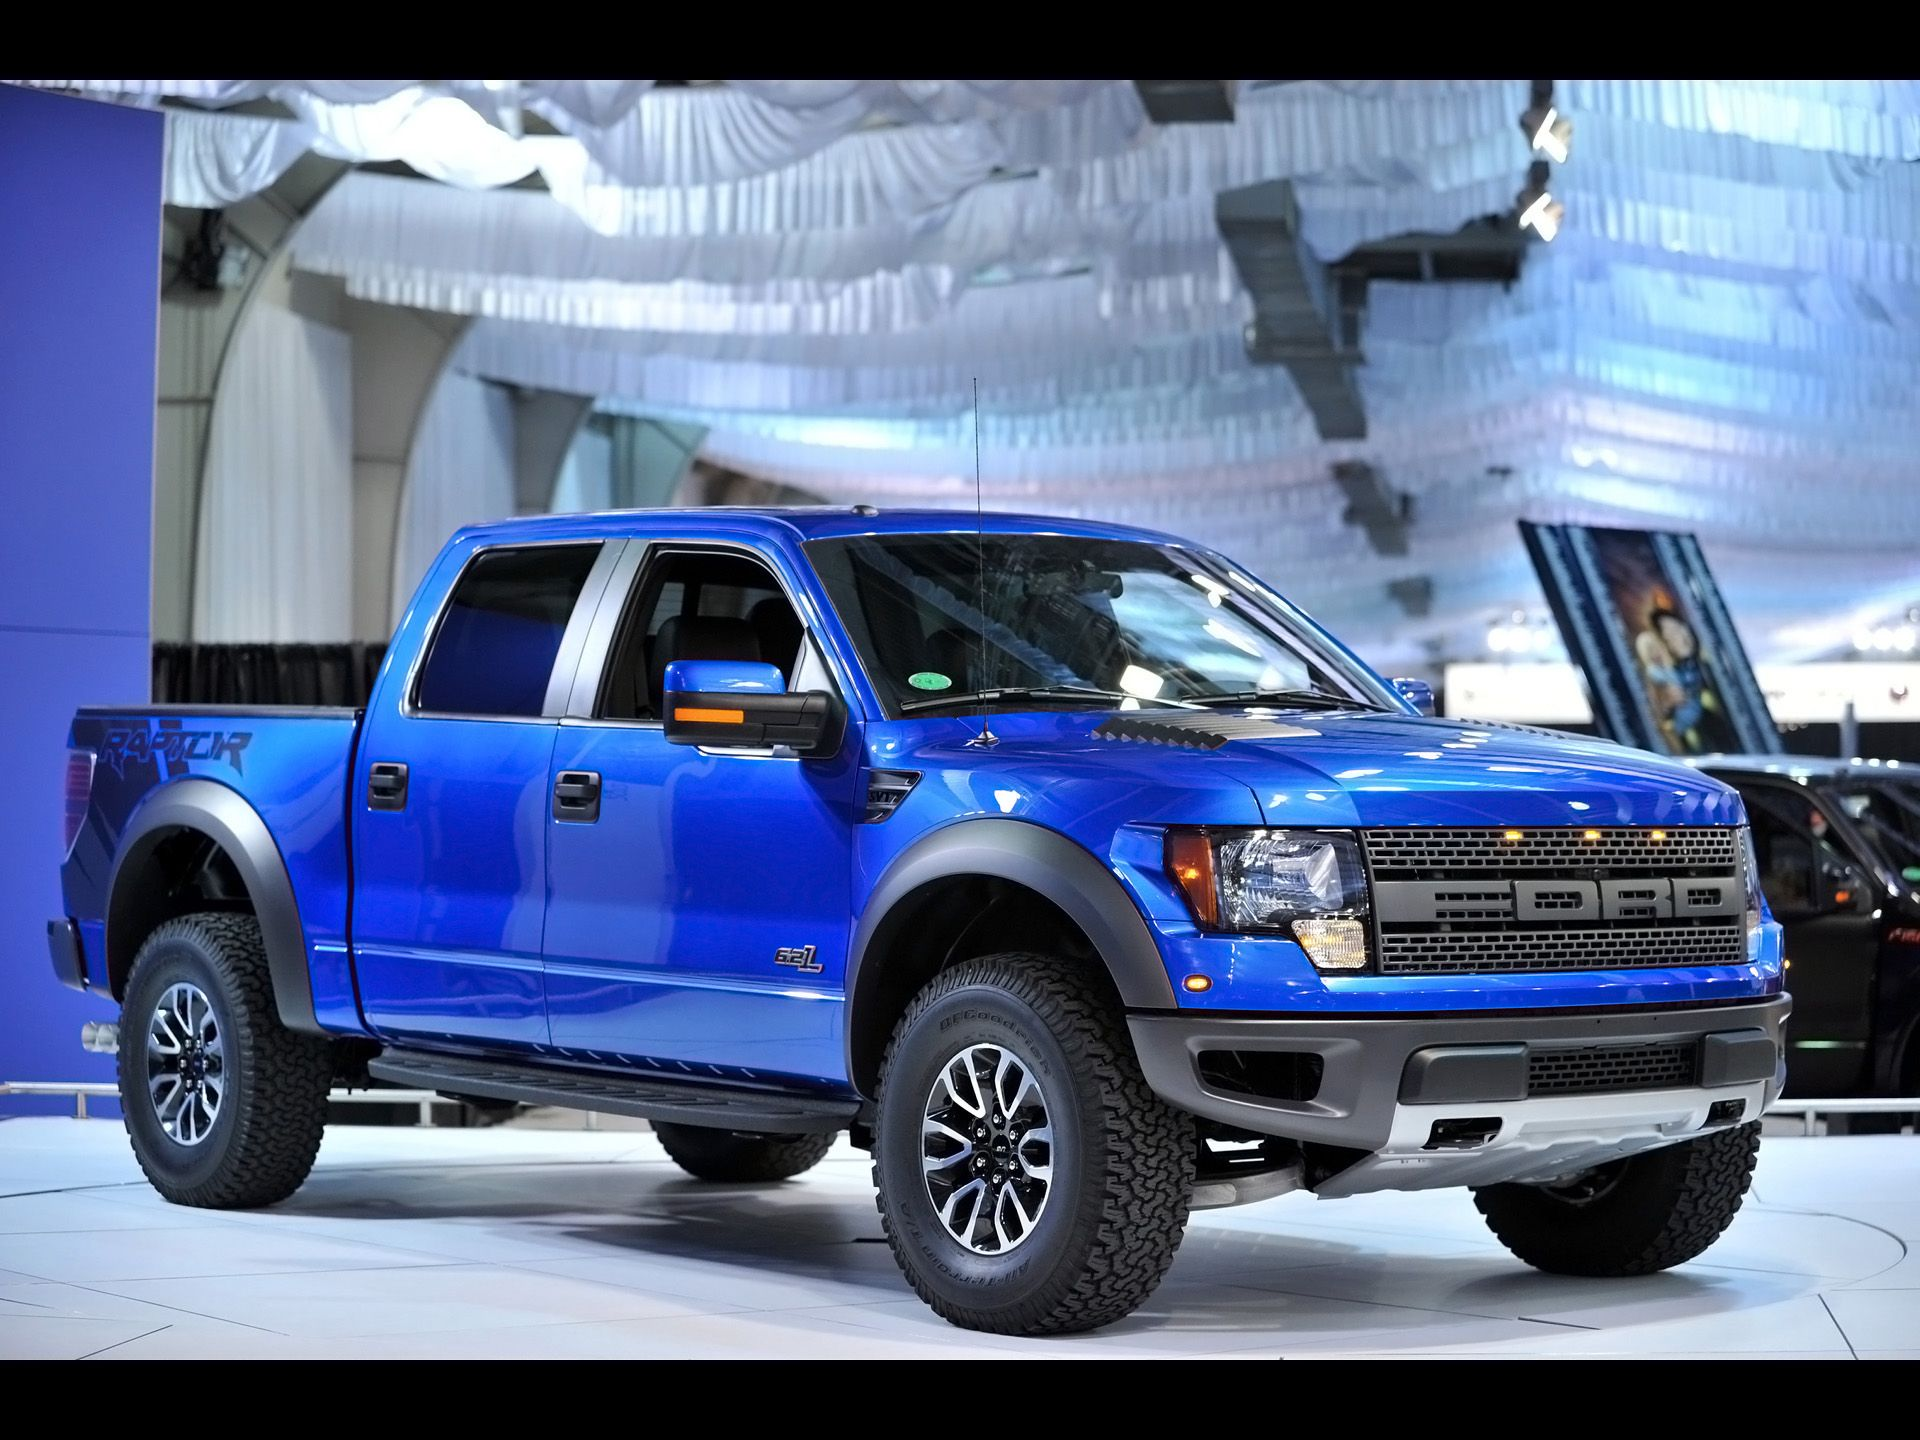 Blue 2012 ford f 150 ford trucks suvs and vans pinterest the 2012 ford svt raptor is a one of a kind truck read more about the 2012 ford svt raptor from the automotive experts at motor trend publicscrutiny Choice Image